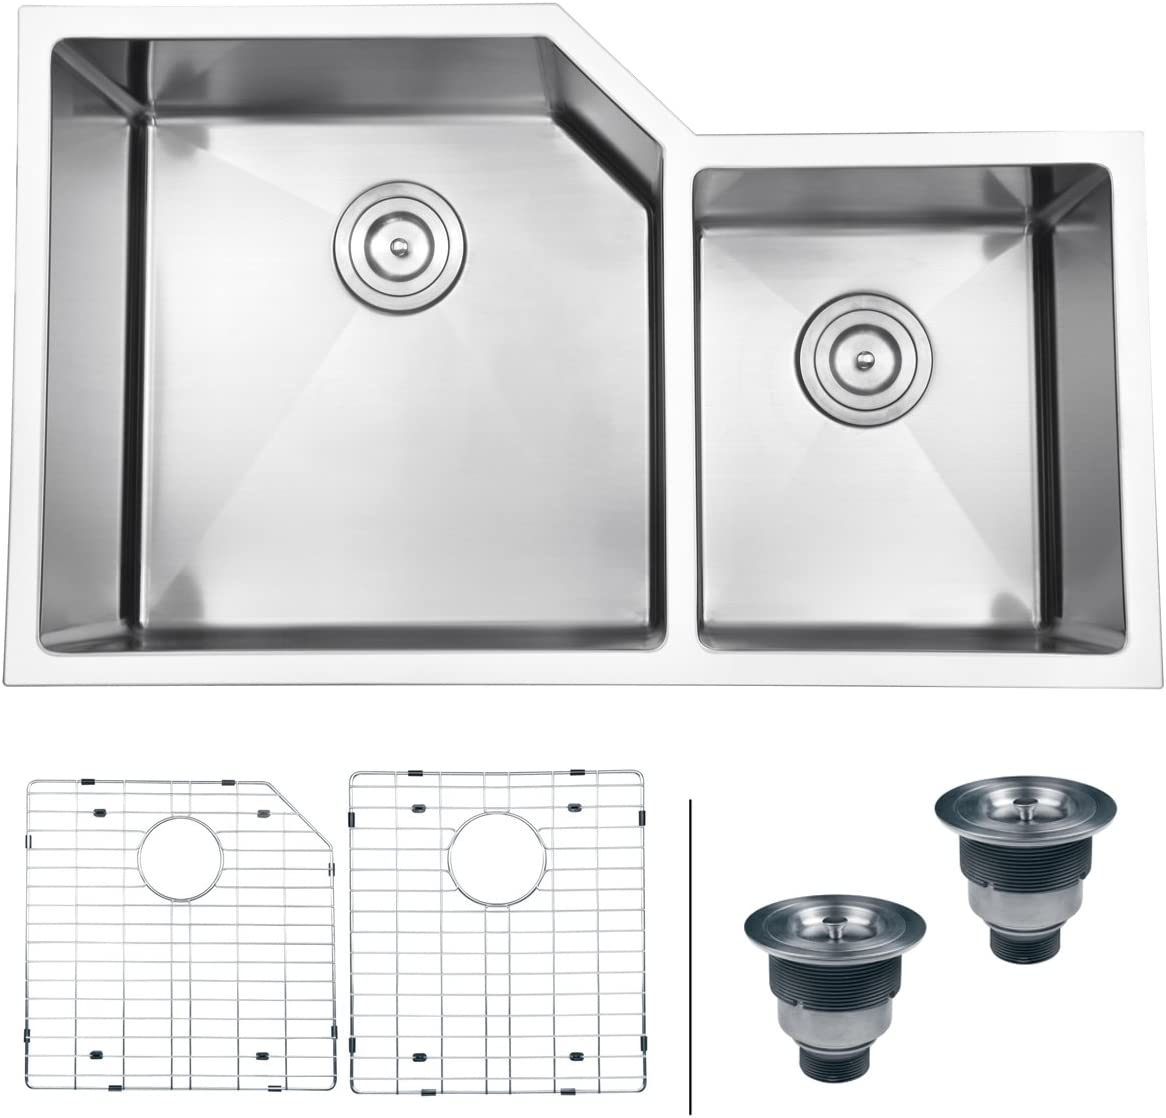 Ruvati 33 Undermount 16 Gauge Double Bowl Kitchen Sink – RVH8150